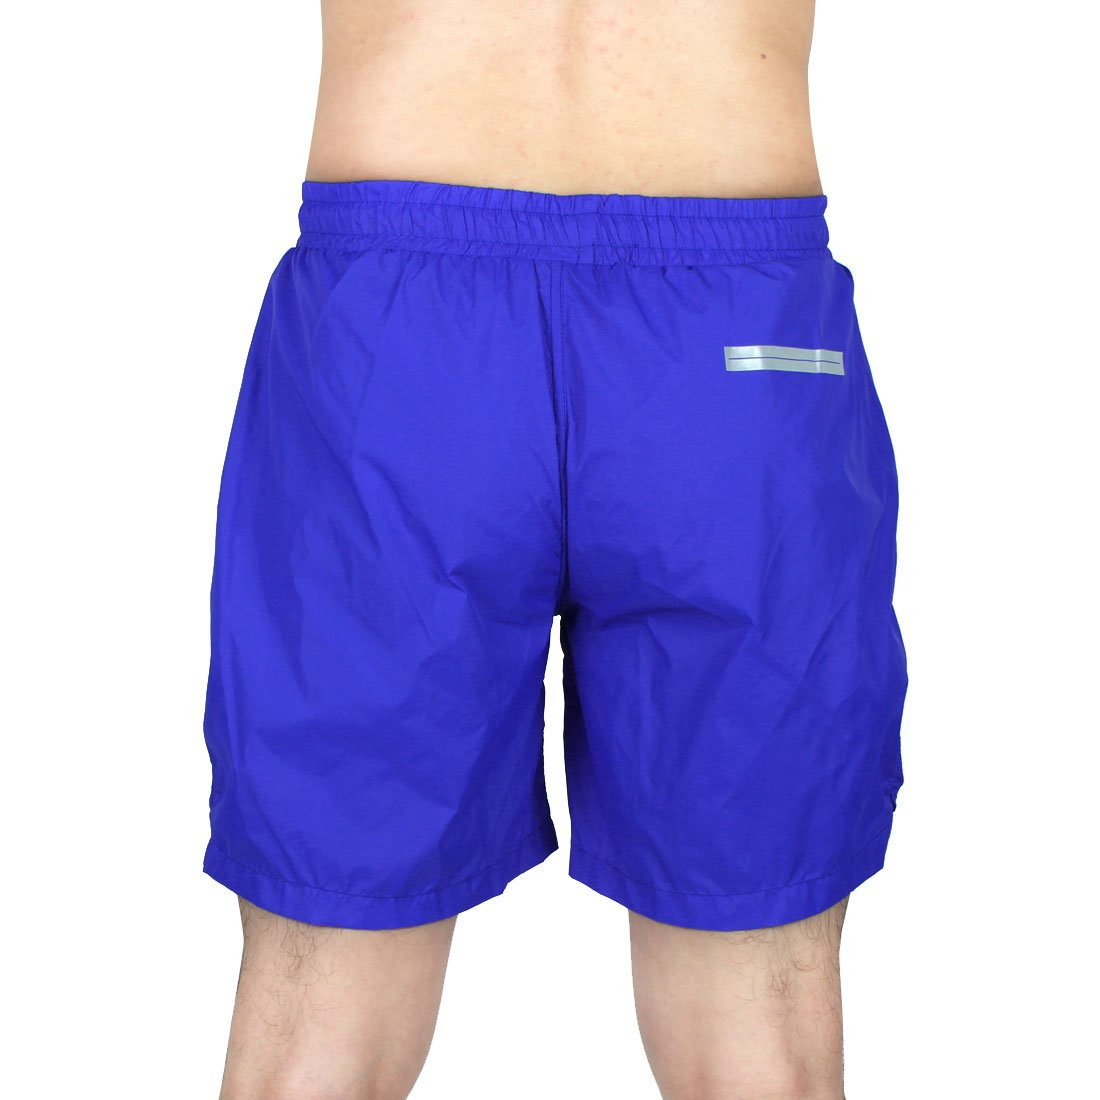 0d6a82451c uxcell Men Exercise Running Polyester Casual Breathable Summer Beach Surf  Board Shorts Pants W30 Dark Blue: Amazon.in: Clothing & Accessories